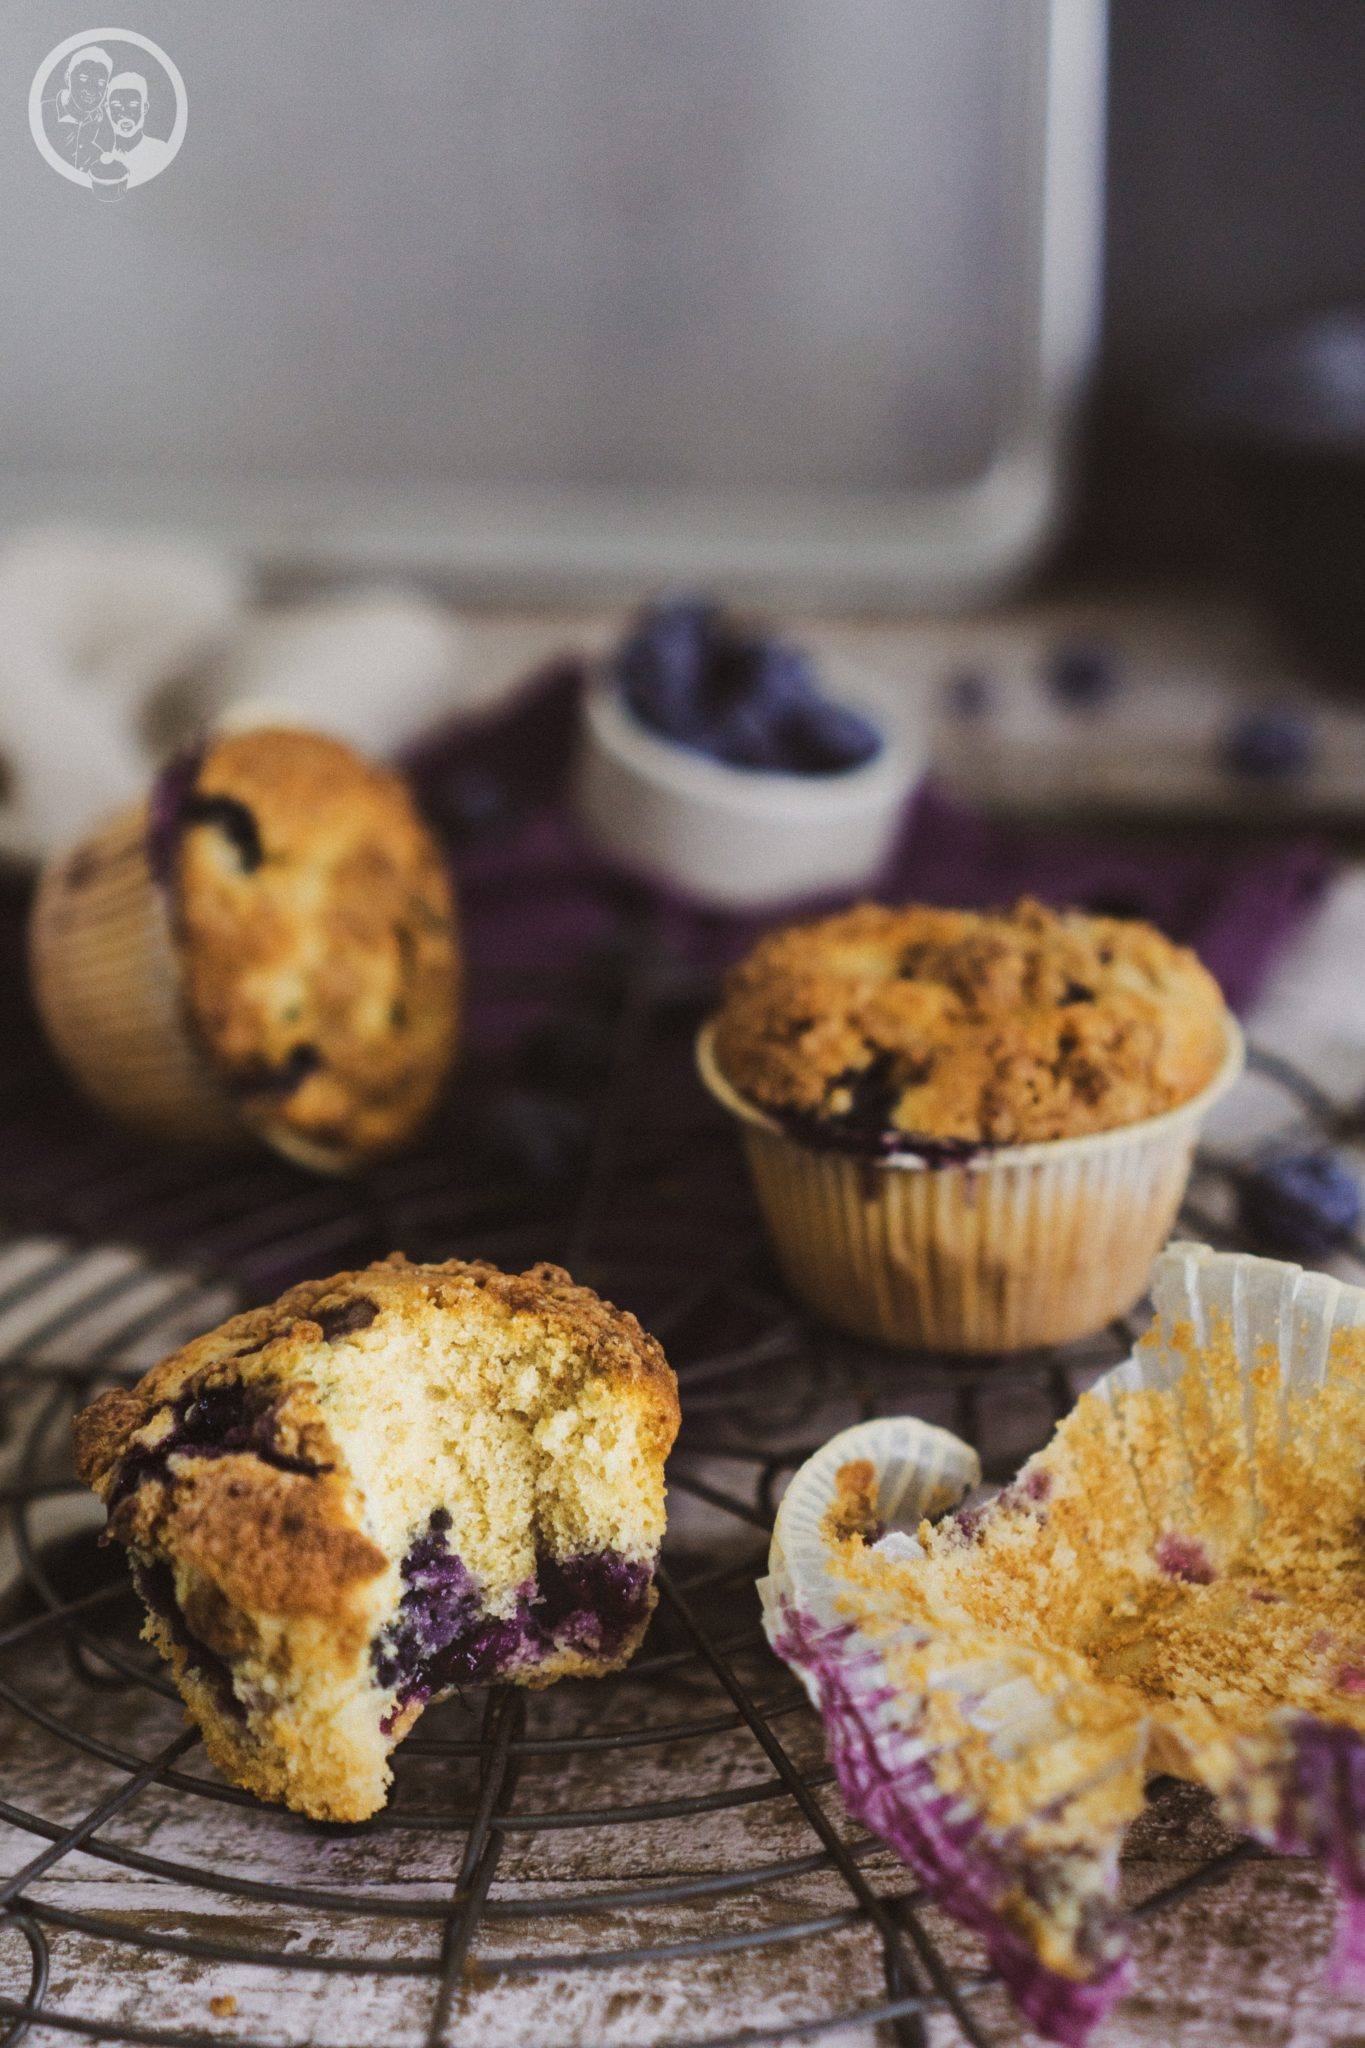 Muffin angebissen